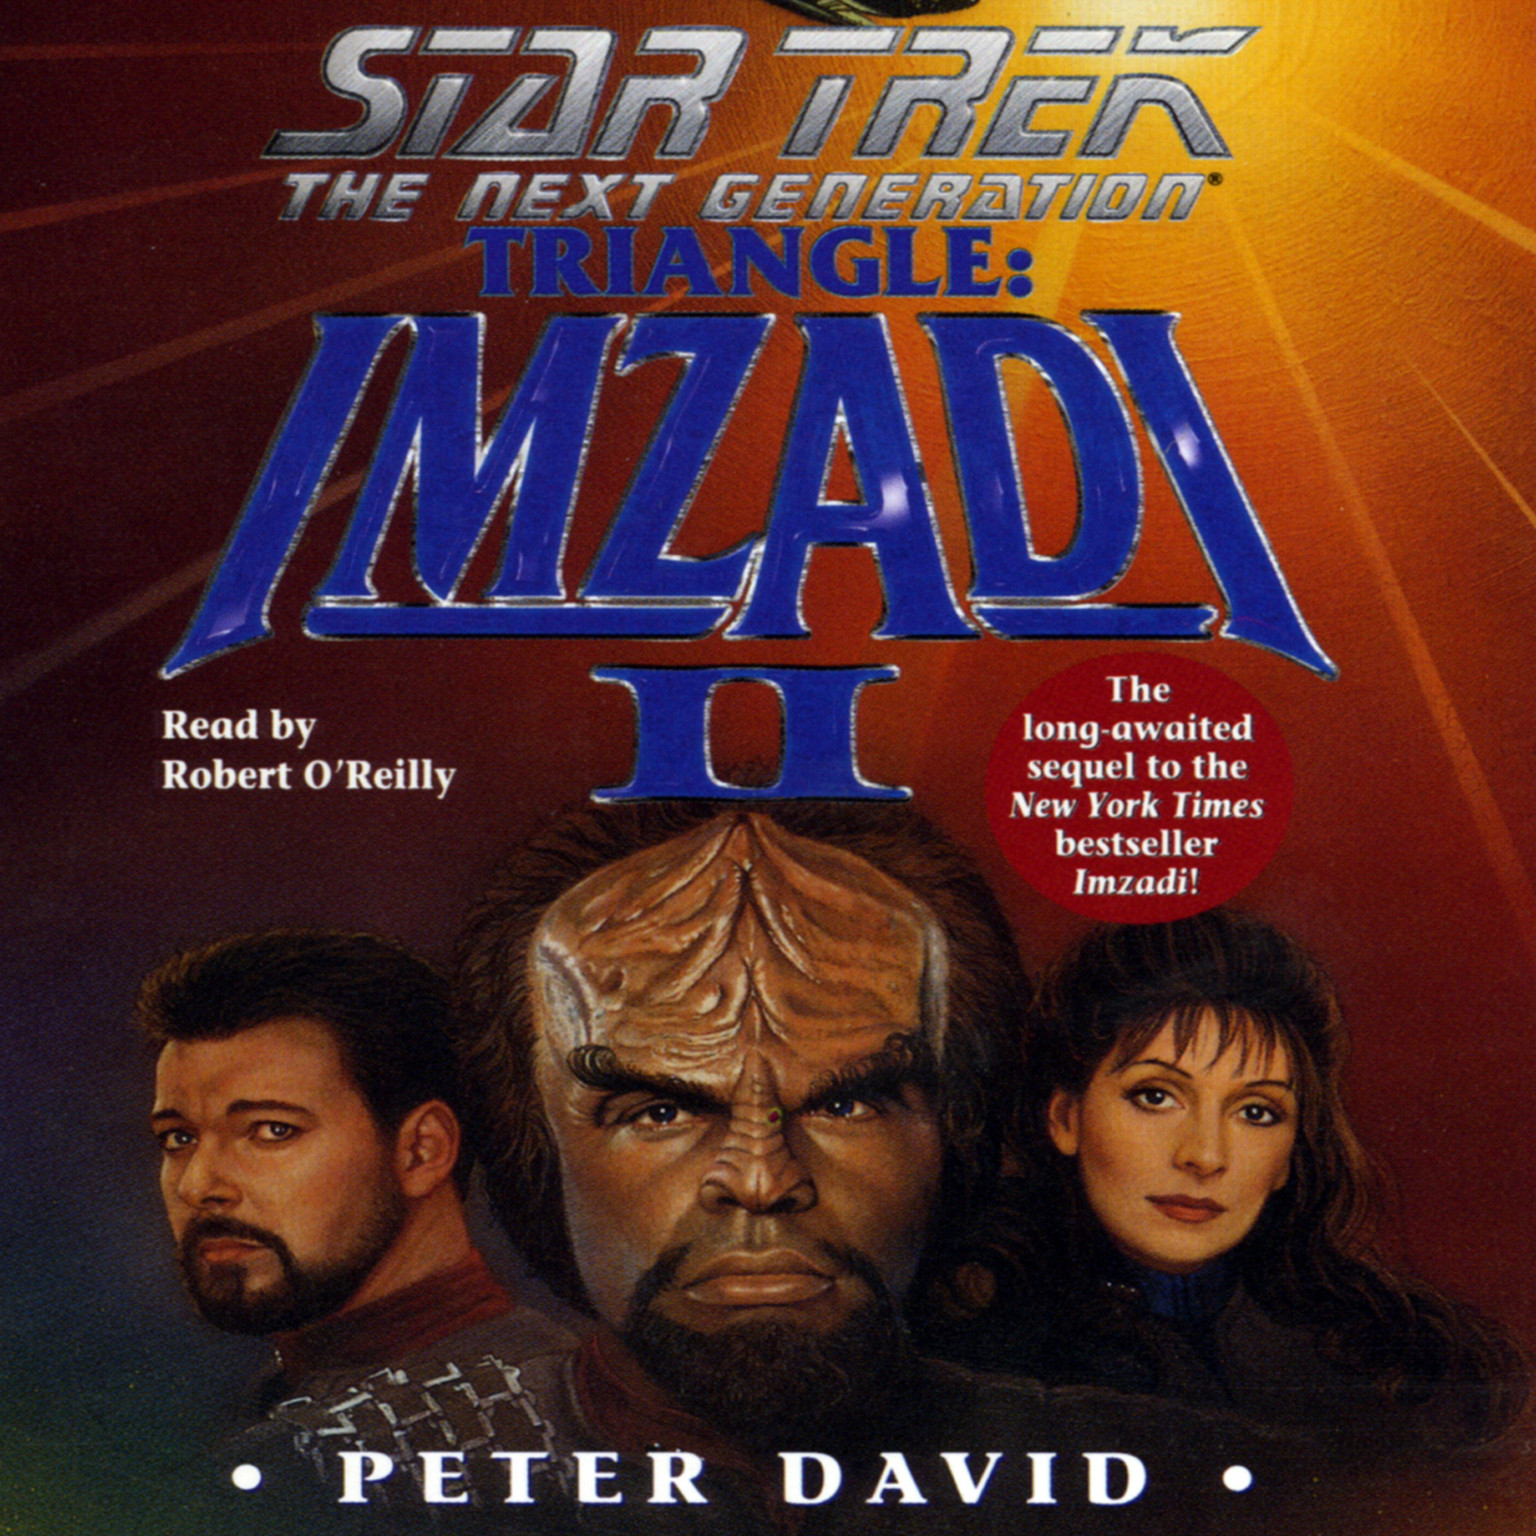 Printable Star Trek the Next Generation: Triangle: Imzadi II Audiobook Cover Art